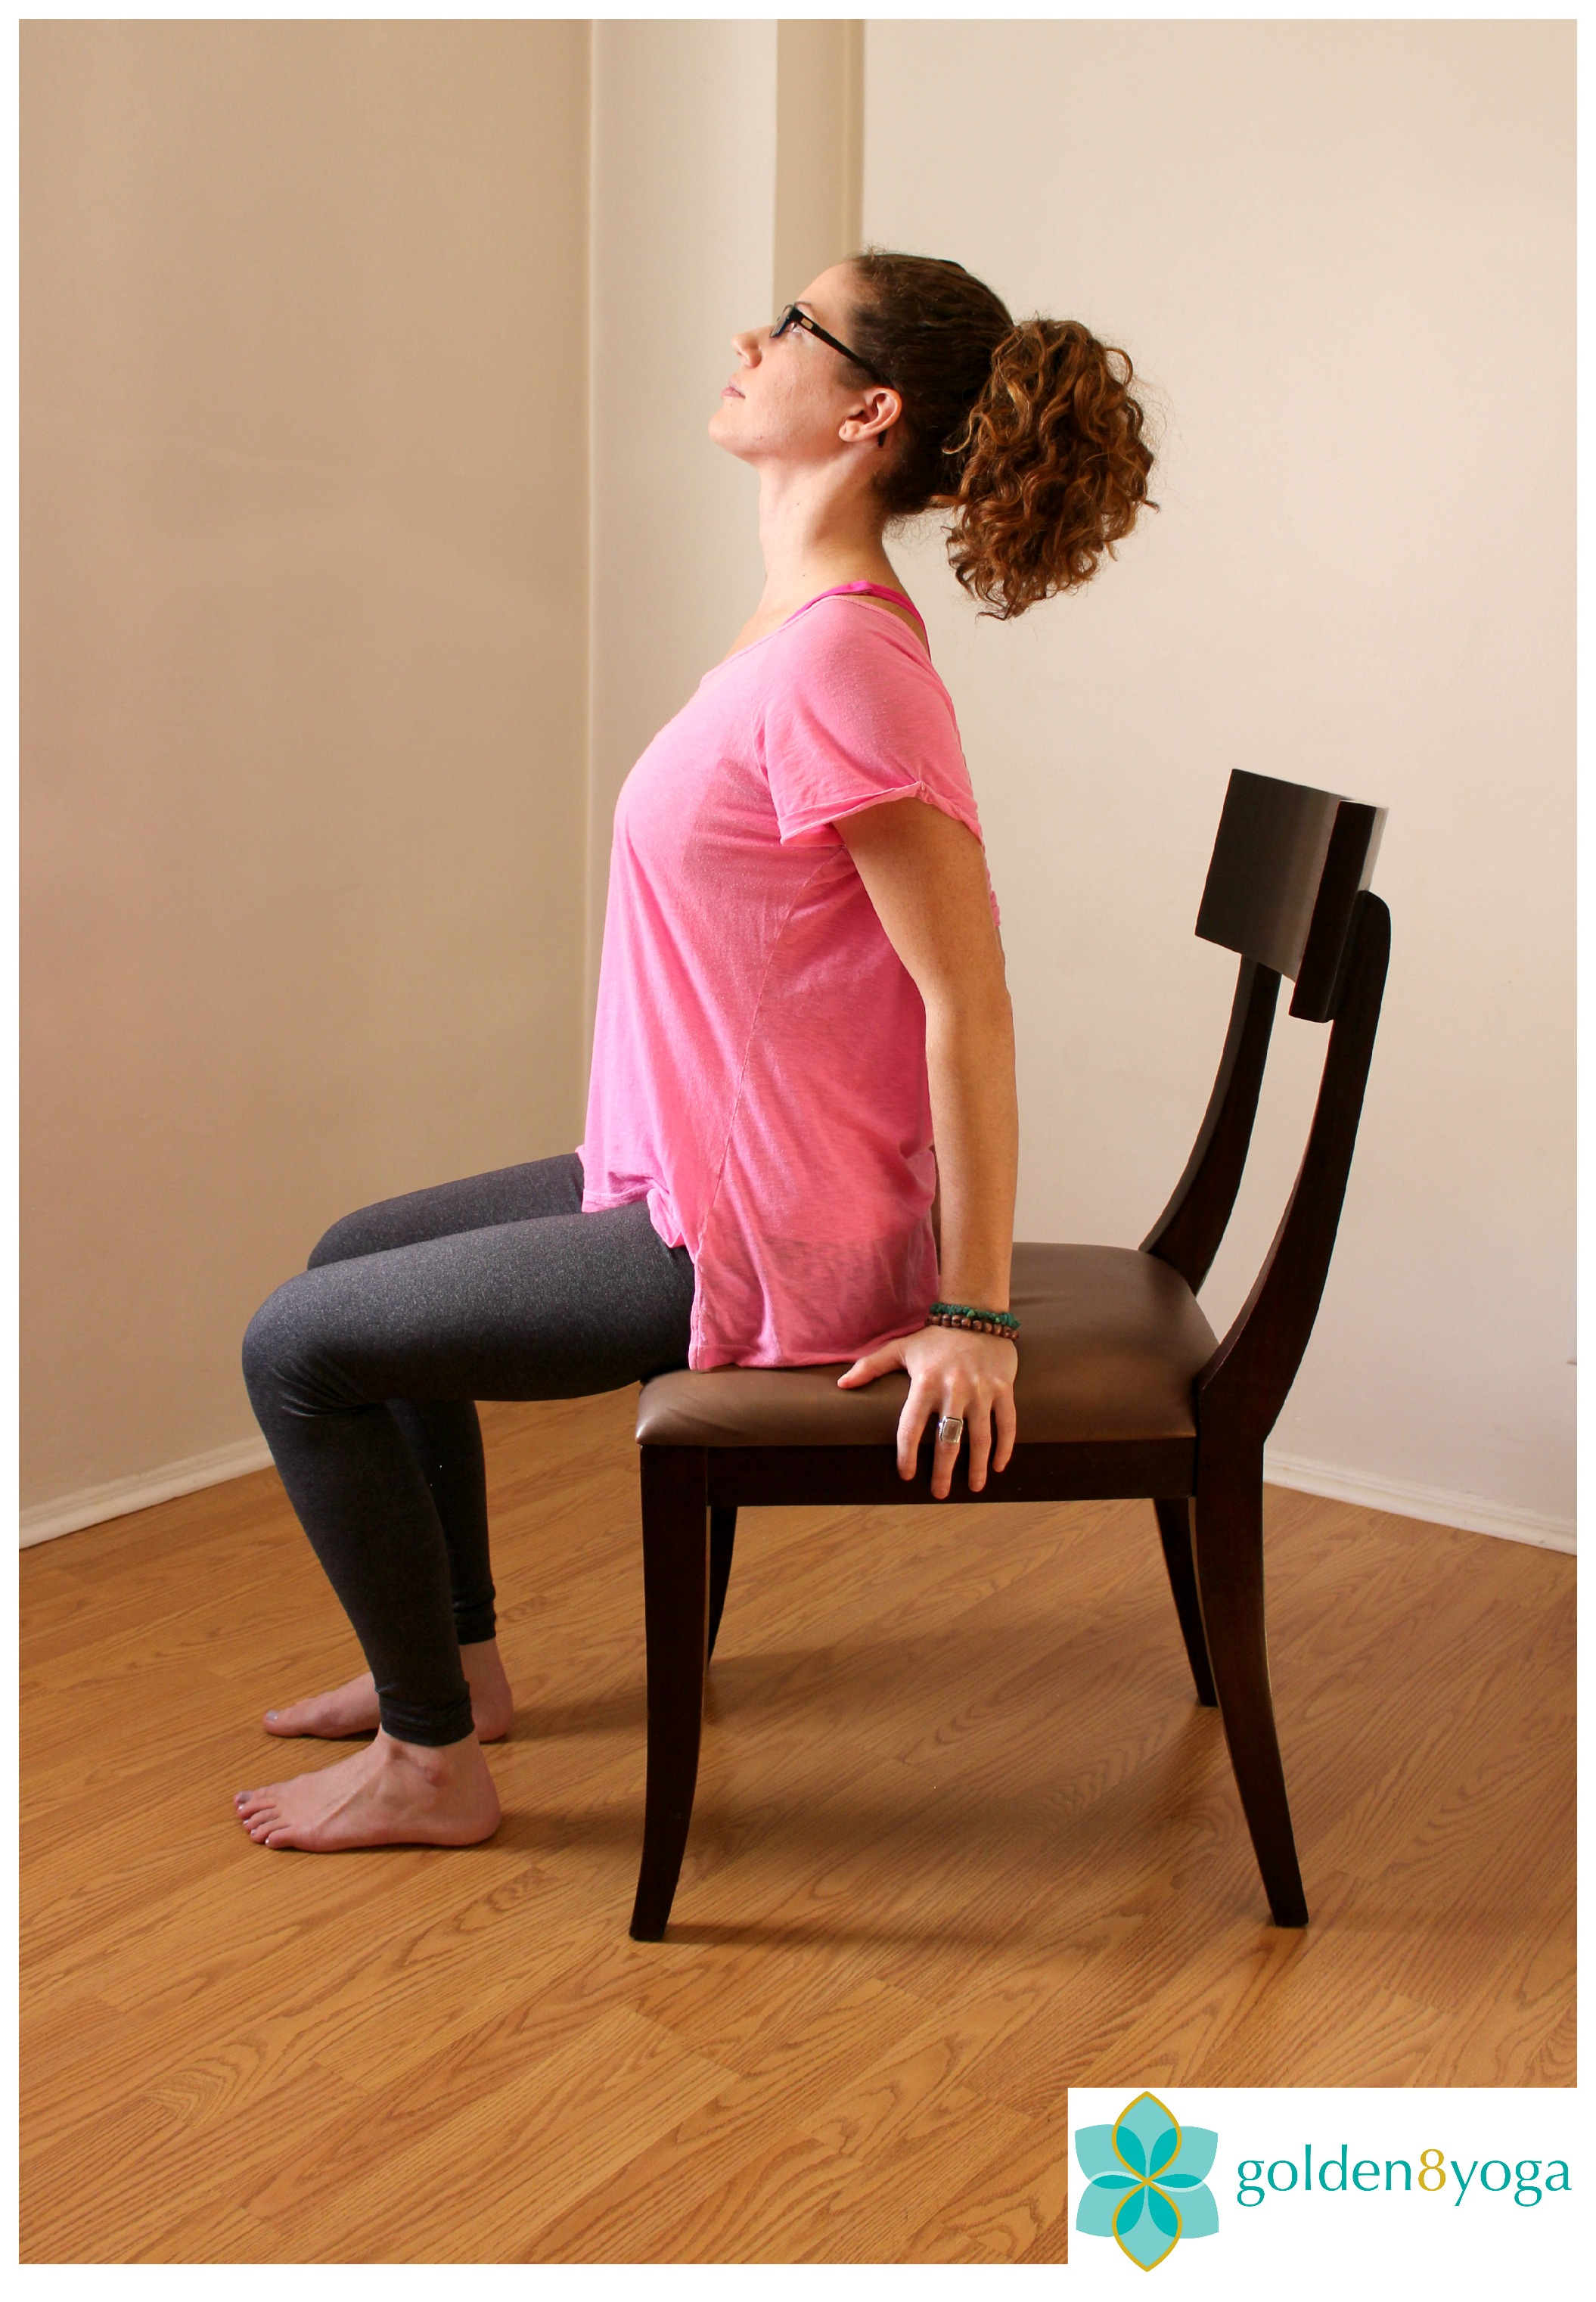 SEATED BACKWARDS BEND  Try this pose if you have stiffness in your back and tension in your shoulders. Benefits include increased mobility in the back and shoulders, and relieves shoulder and back tension.  1. Sit comfortably in a chair with your feet hip width distance and parallel to each other. Sit up tall with your back, neck and head in a straight line and shoulders relaxed.  2. Place both hands on the chair underneath or slightly behind your shoulders with elbows slightly bent. Inhale here.  3. Exhale and press your hands into the chair and gently bend your torso backwards. Keep your head in line with your back with your gaze looking up towards the ceiling.   4. Hold this pose for a few seconds breathing normally, then on your next inhale slowly return to your starting seated position and repeat on the second side.   **Tip: Be careful not to drop your head back too far as it can constrict your breathing and cause strain on your neck. Only tilt your head back as far as it feels comfortable on your neck**